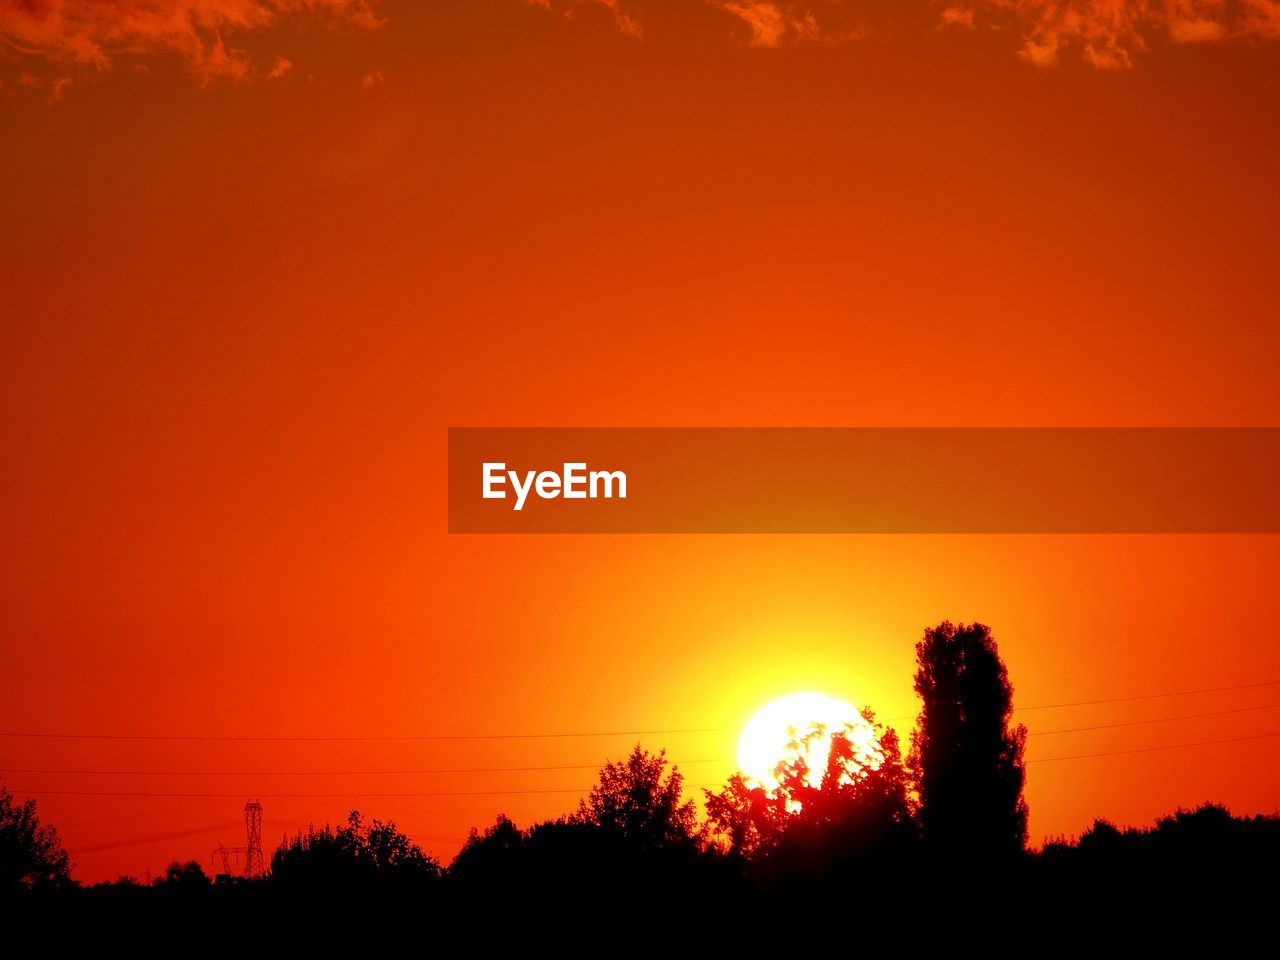 sunset, tree, orange color, silhouette, beauty in nature, nature, scenics, tranquil scene, no people, sun, tranquility, growth, outdoors, sky